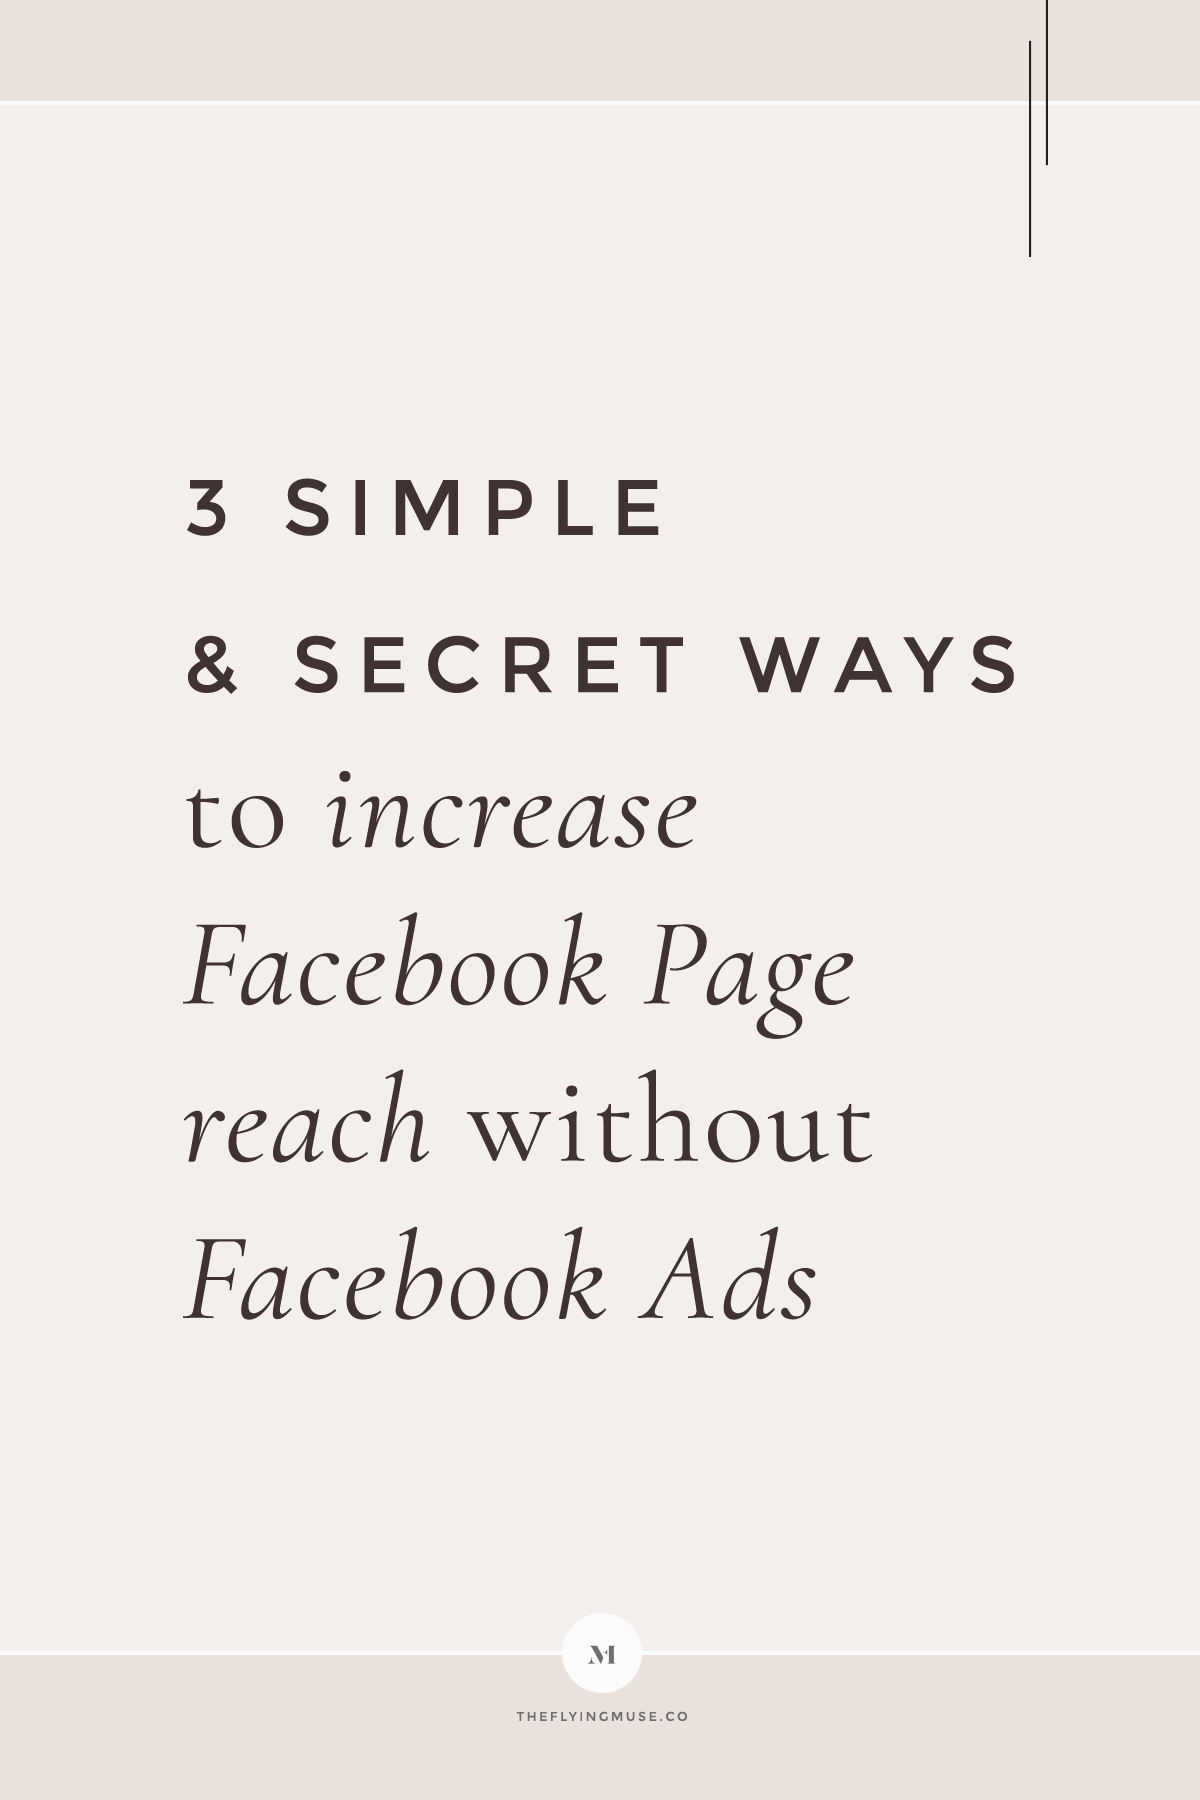 How to target Facebook Page Audience without using Facebook Ads